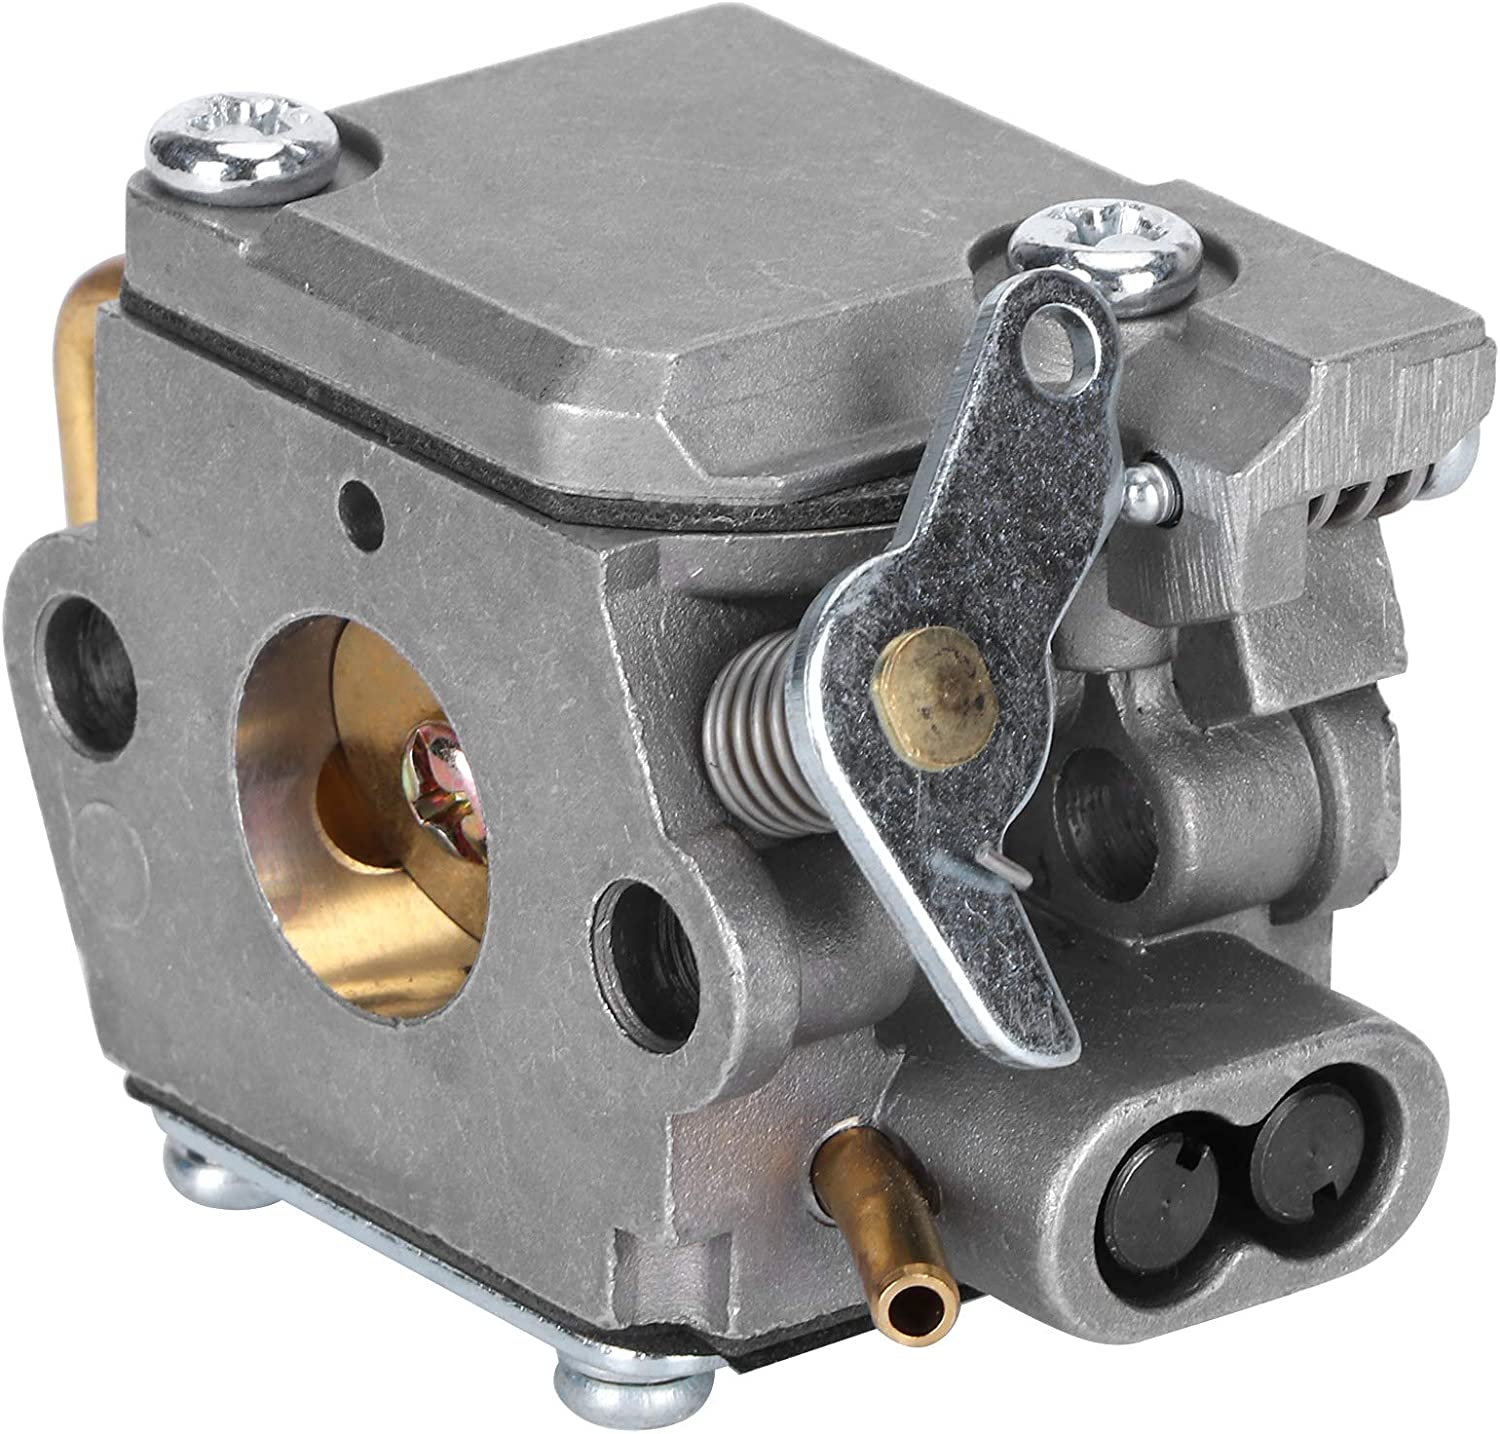 Demeras Easy to Install Carburetor Lawn Sacramento Mall famous Accessor Replacement Car